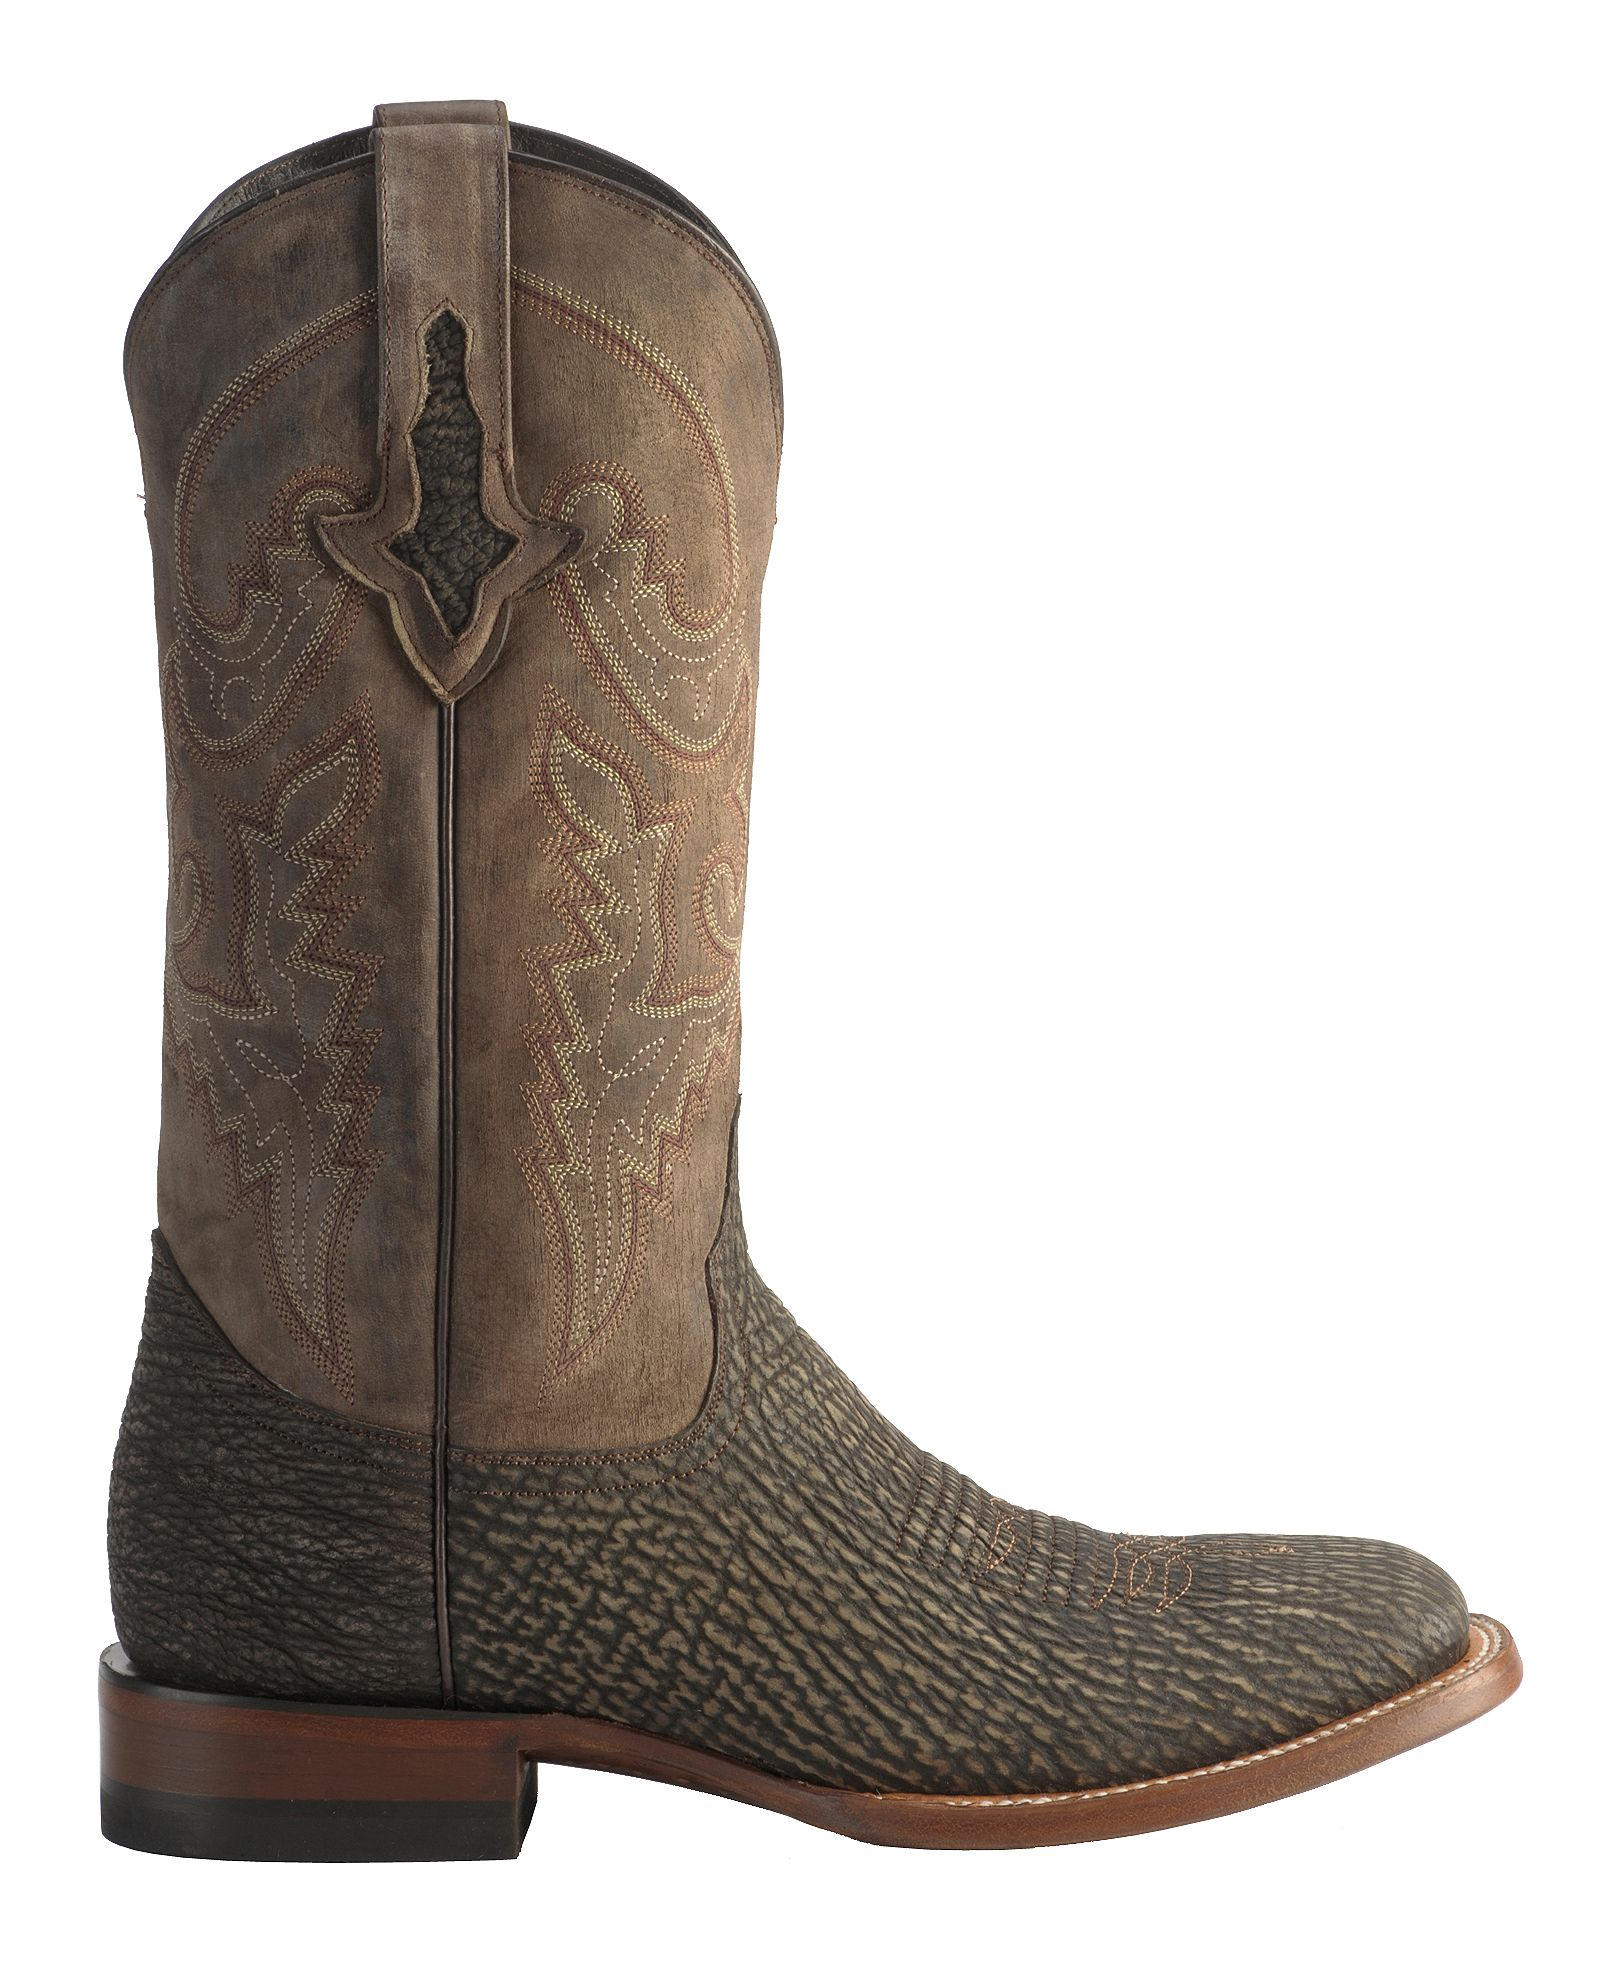 Lucchese Cowboy Boots Coltford Boots